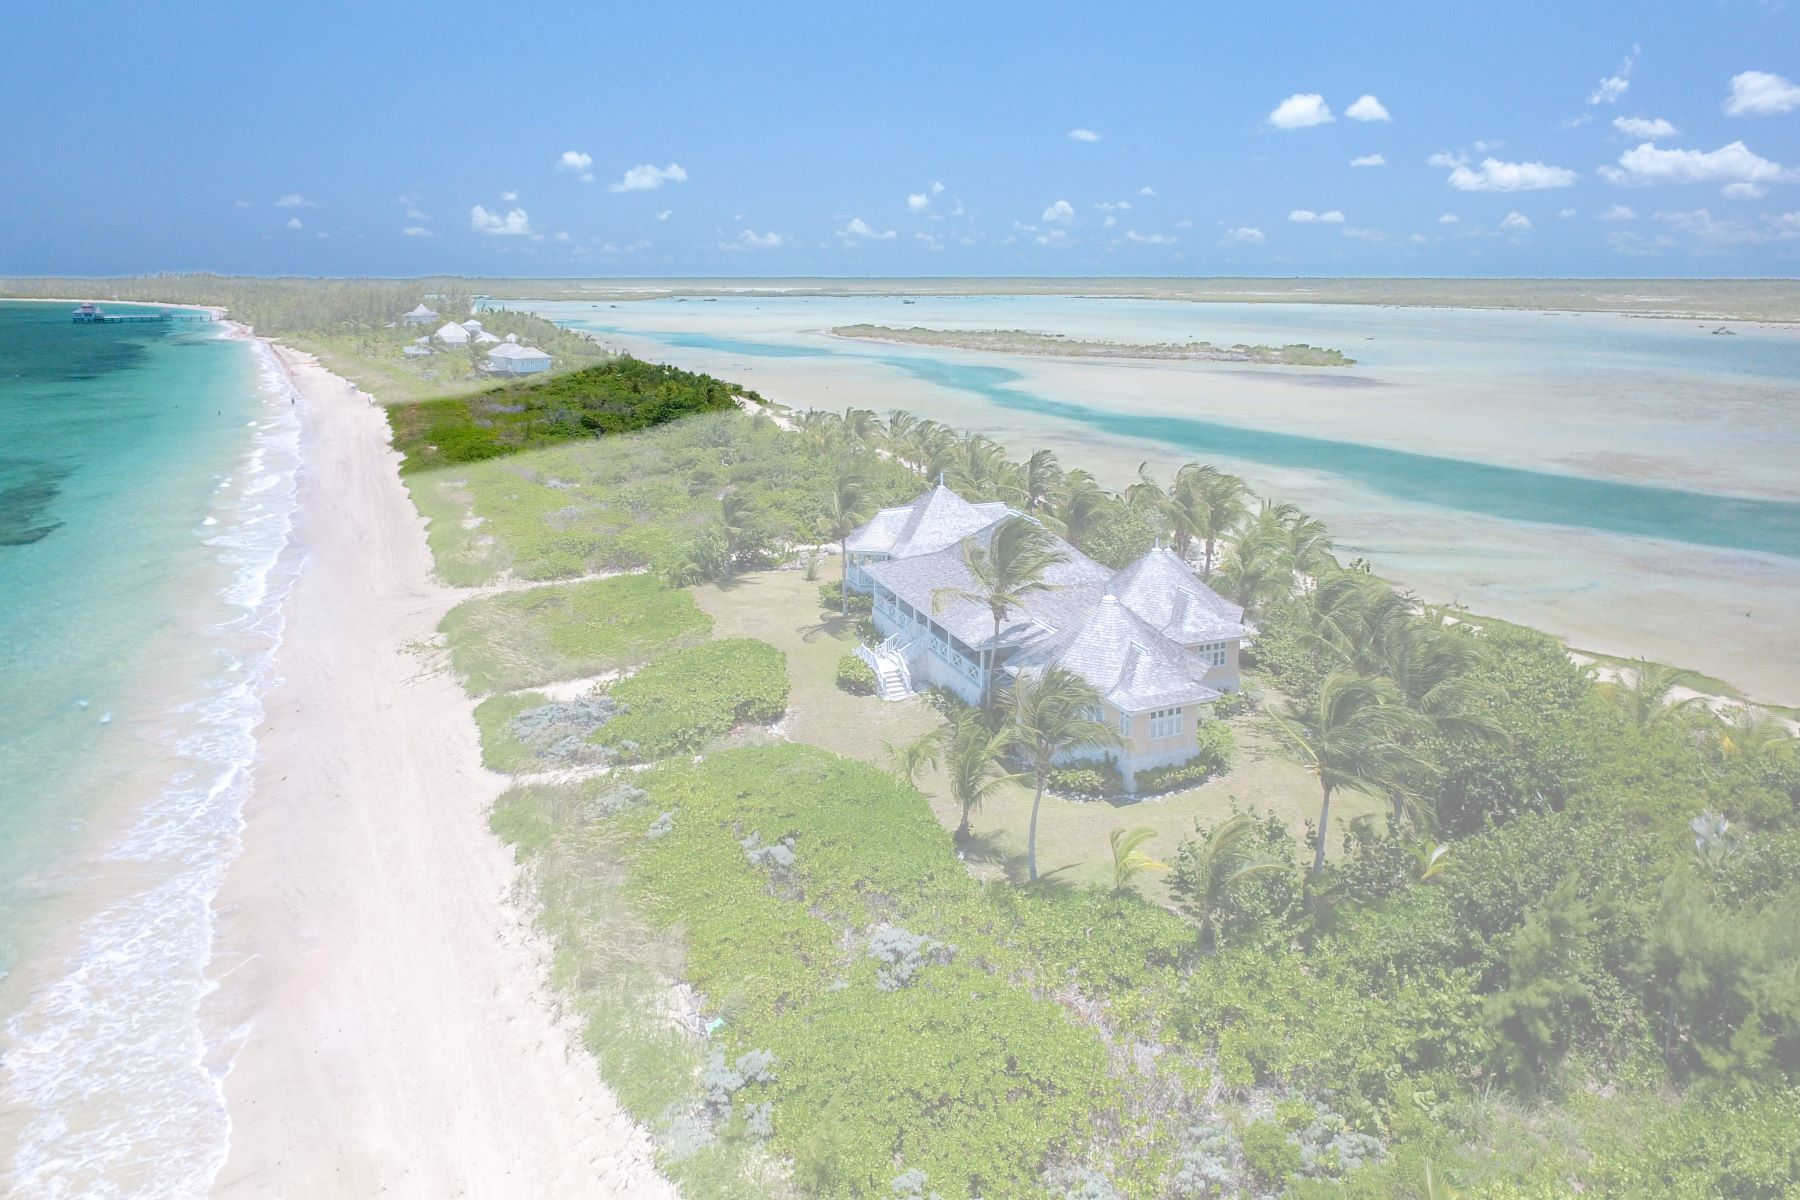 Land for Sale at Guava Duff Lot in Kamalame Cay, Andros Andros, Andros Bahamas